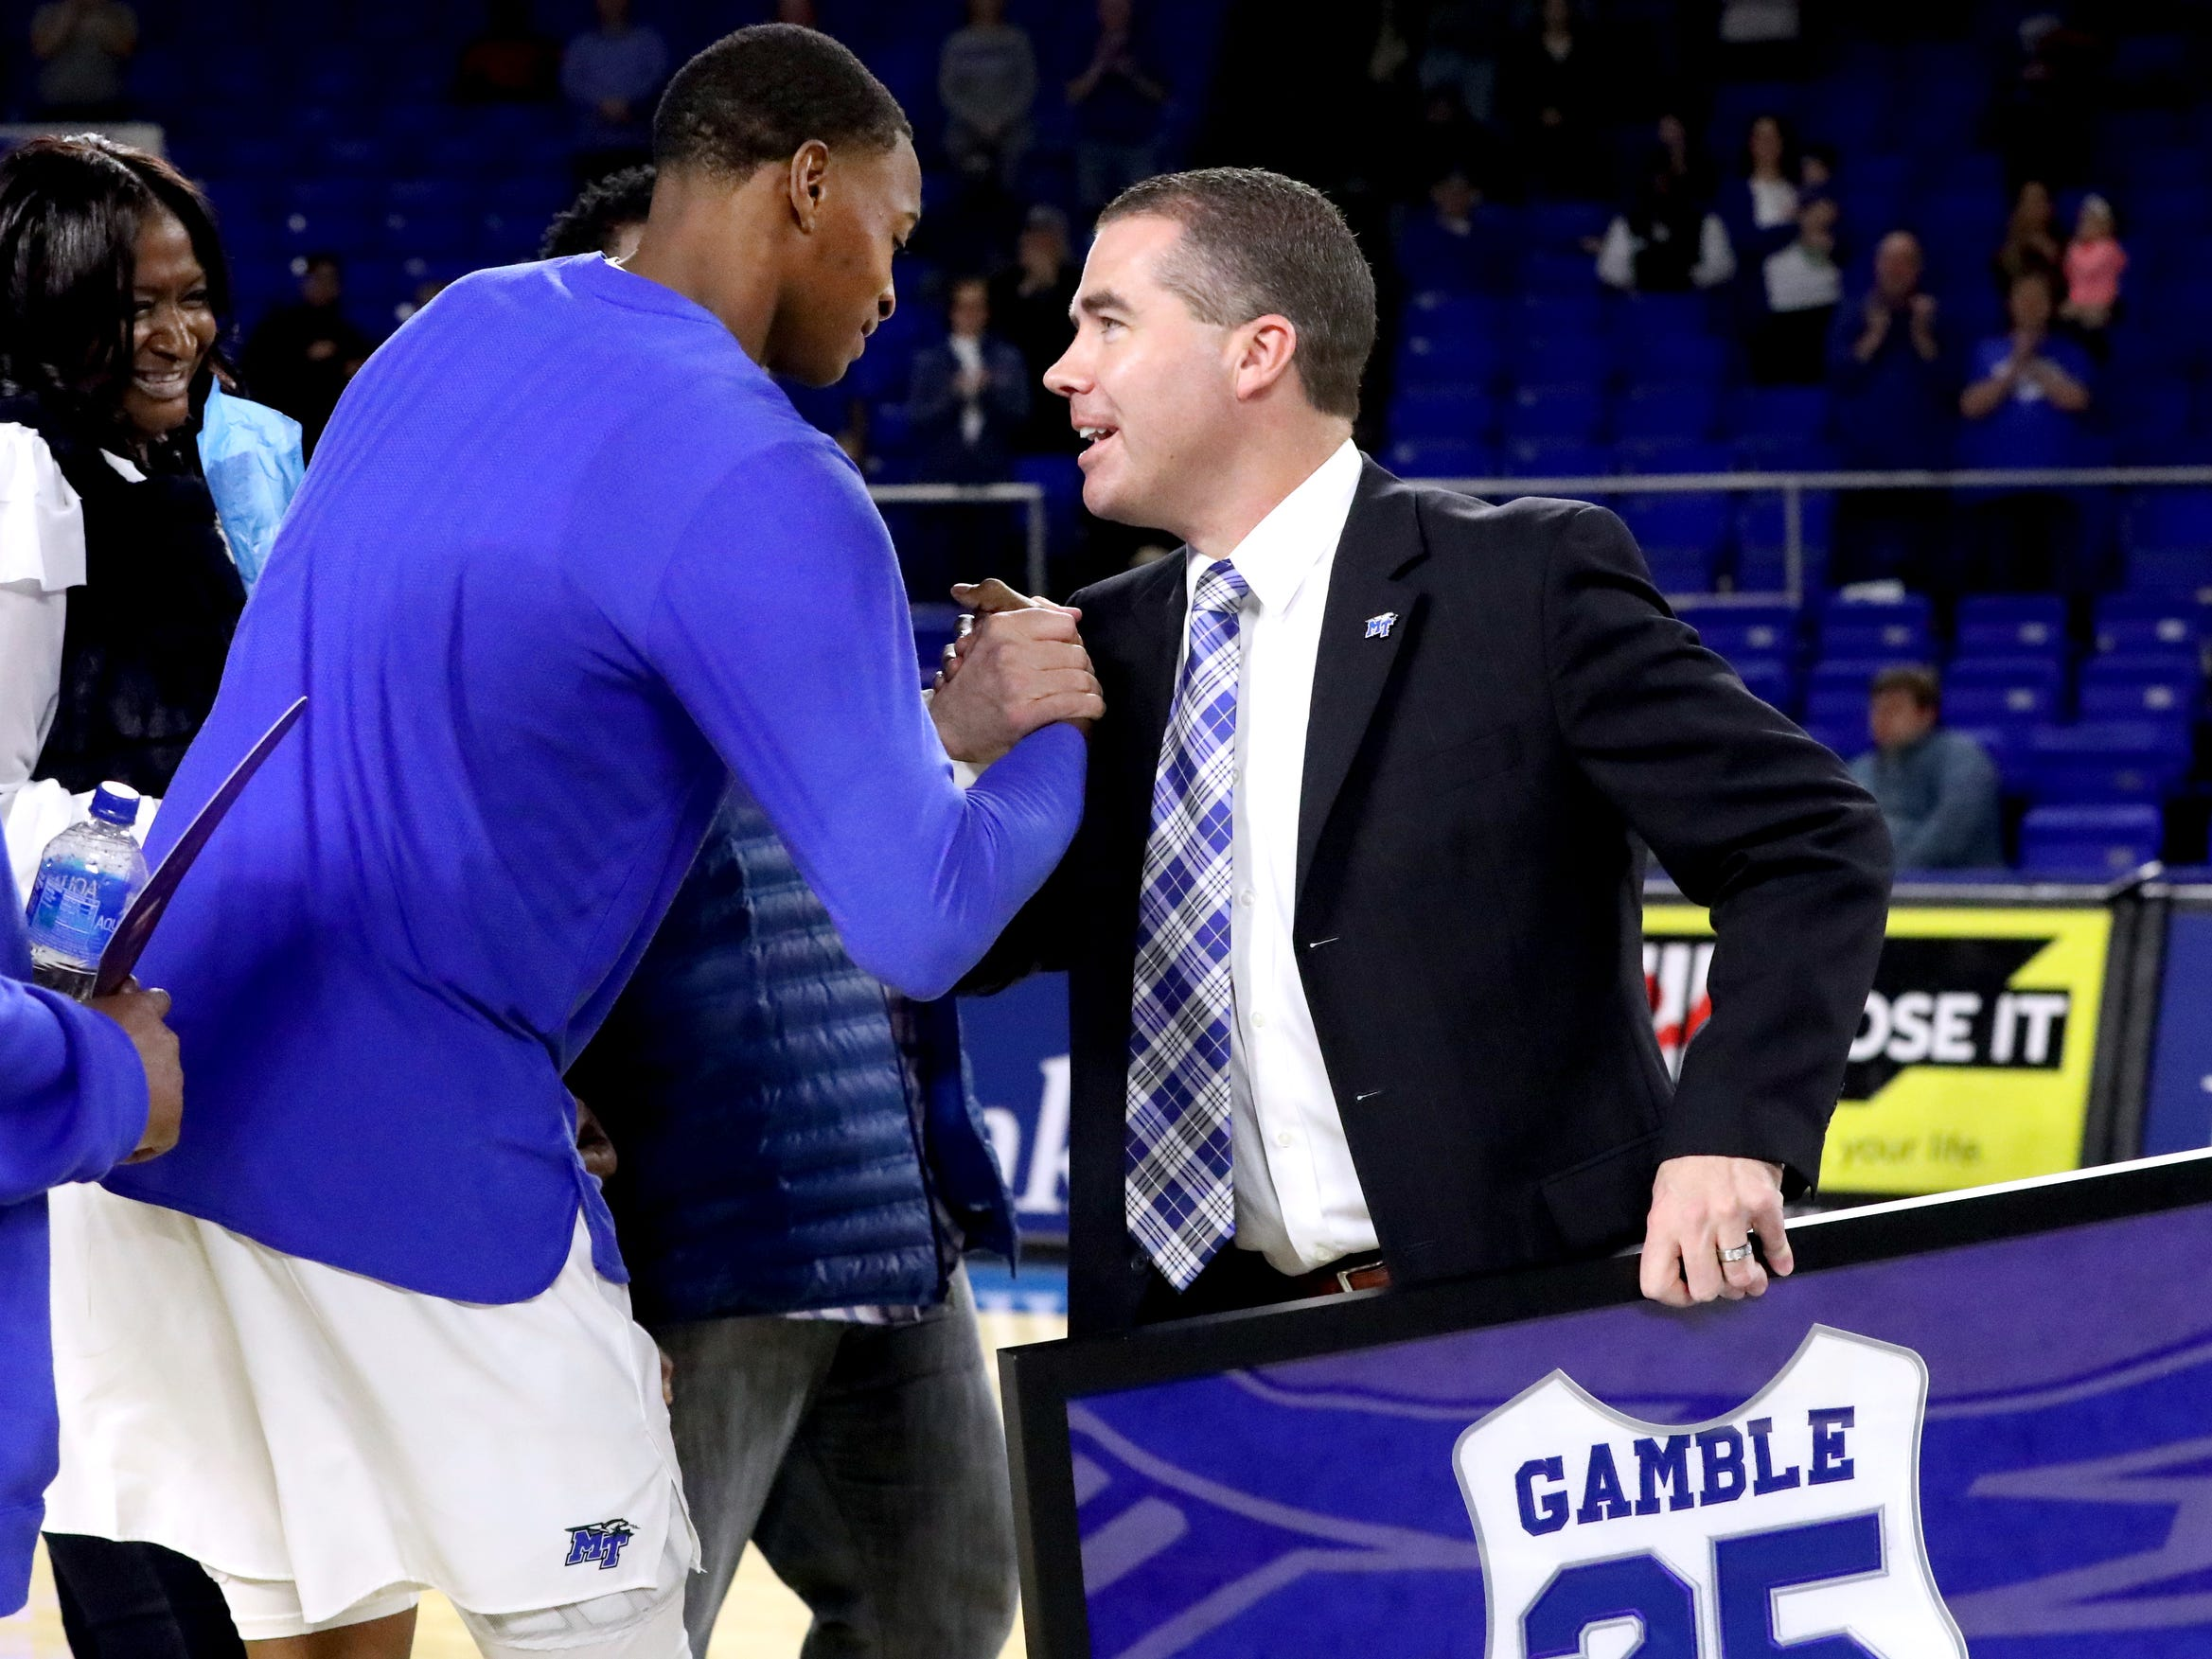 MTSU head coach Nick McDevitt honors MTSU senior forward Karl Gamble (25) with a framed jersey during MTSU's senior night before the game against UTEP on Saturday, March 9, 2019, at Murphy Center in Murfreesboro, Tenn.